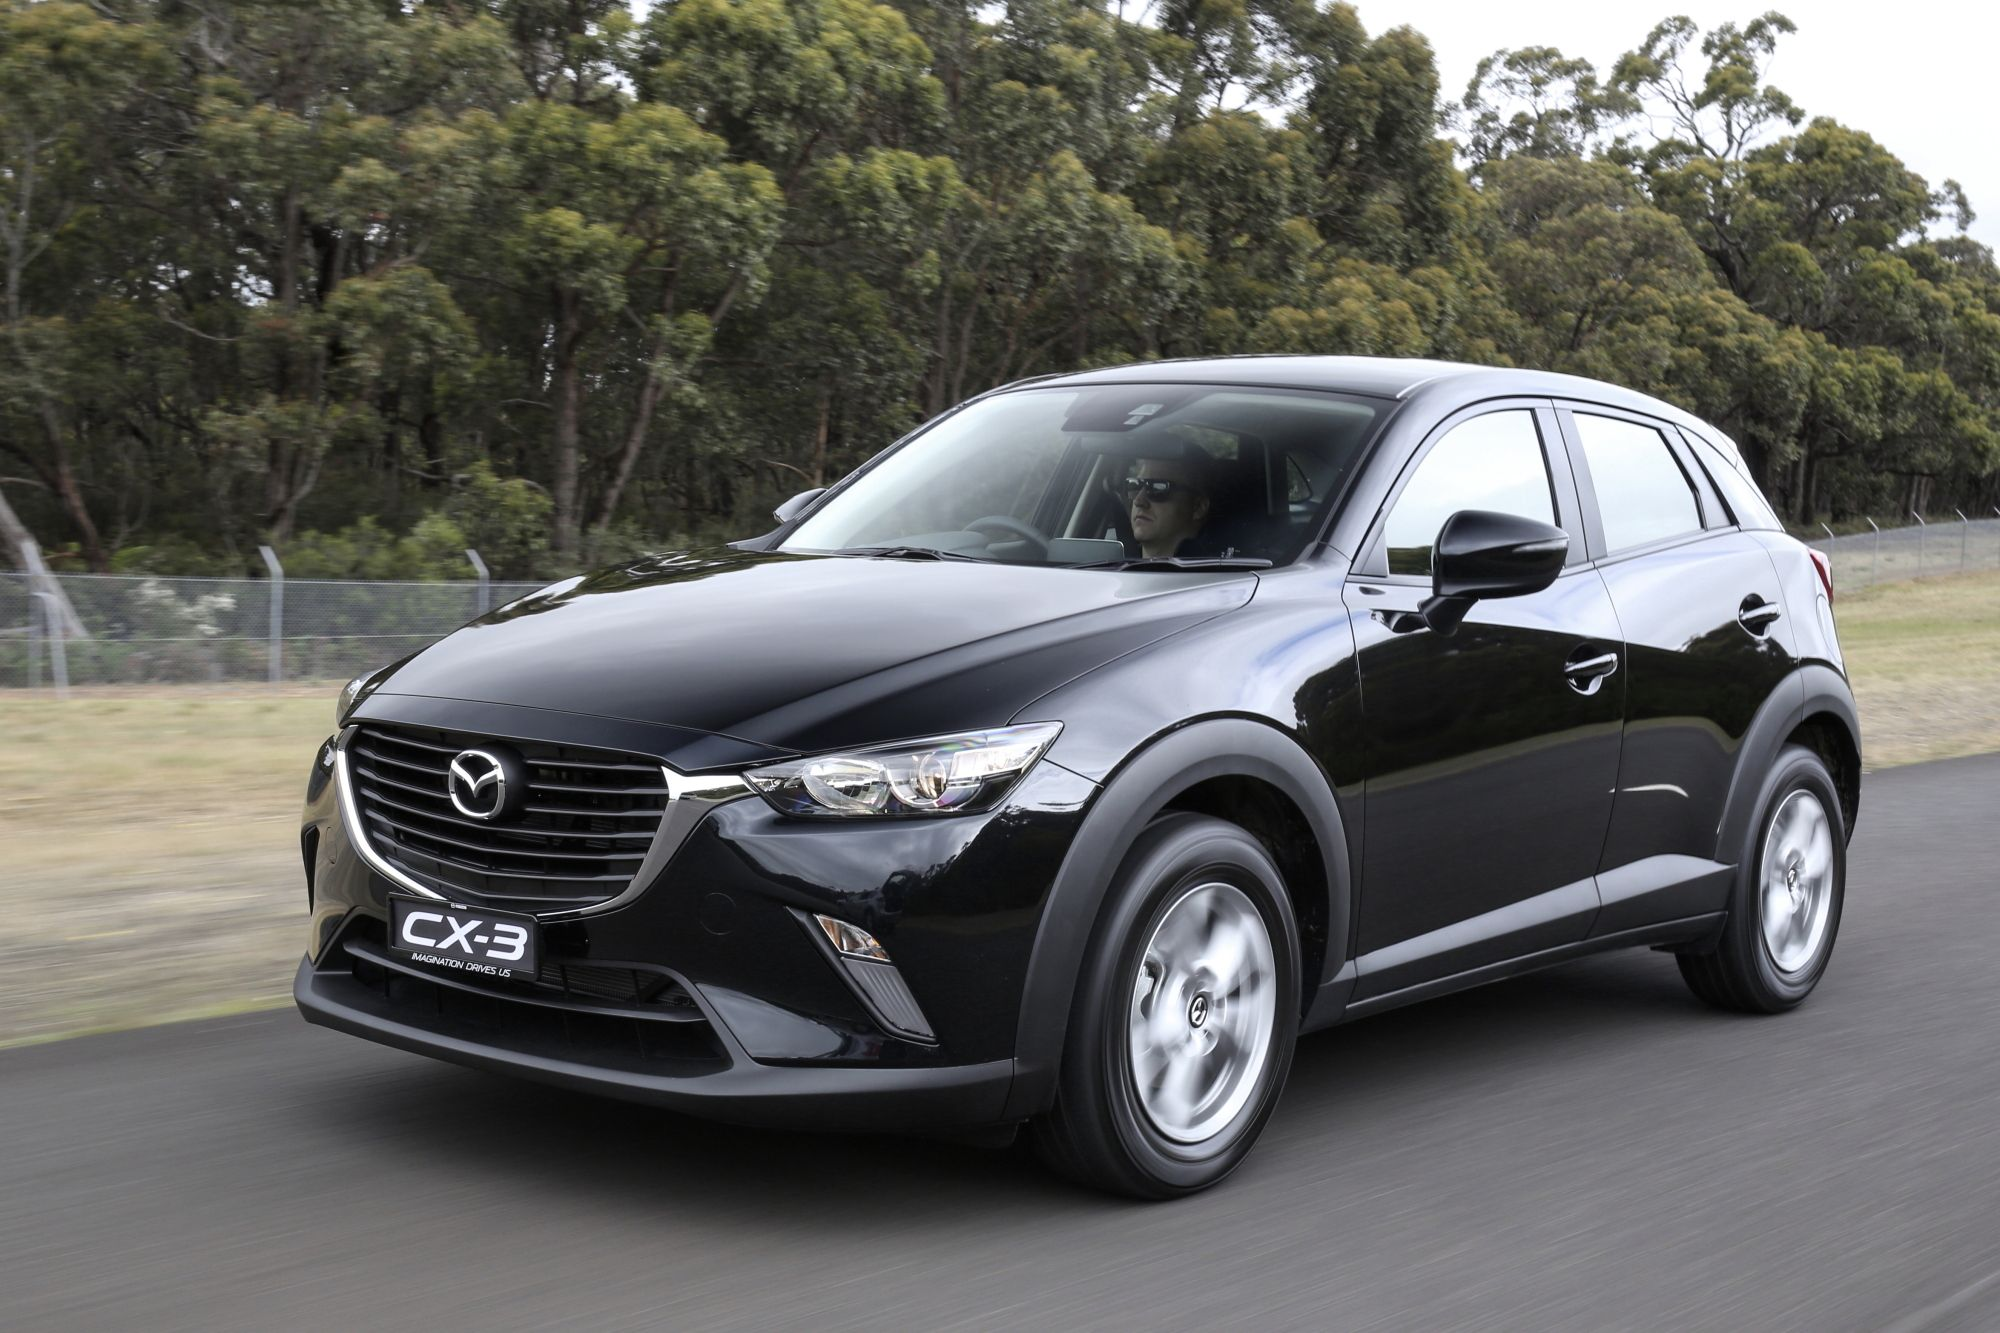 Mazda Launches The New 2016 Model Year Cx 3 Crossover Into The Us